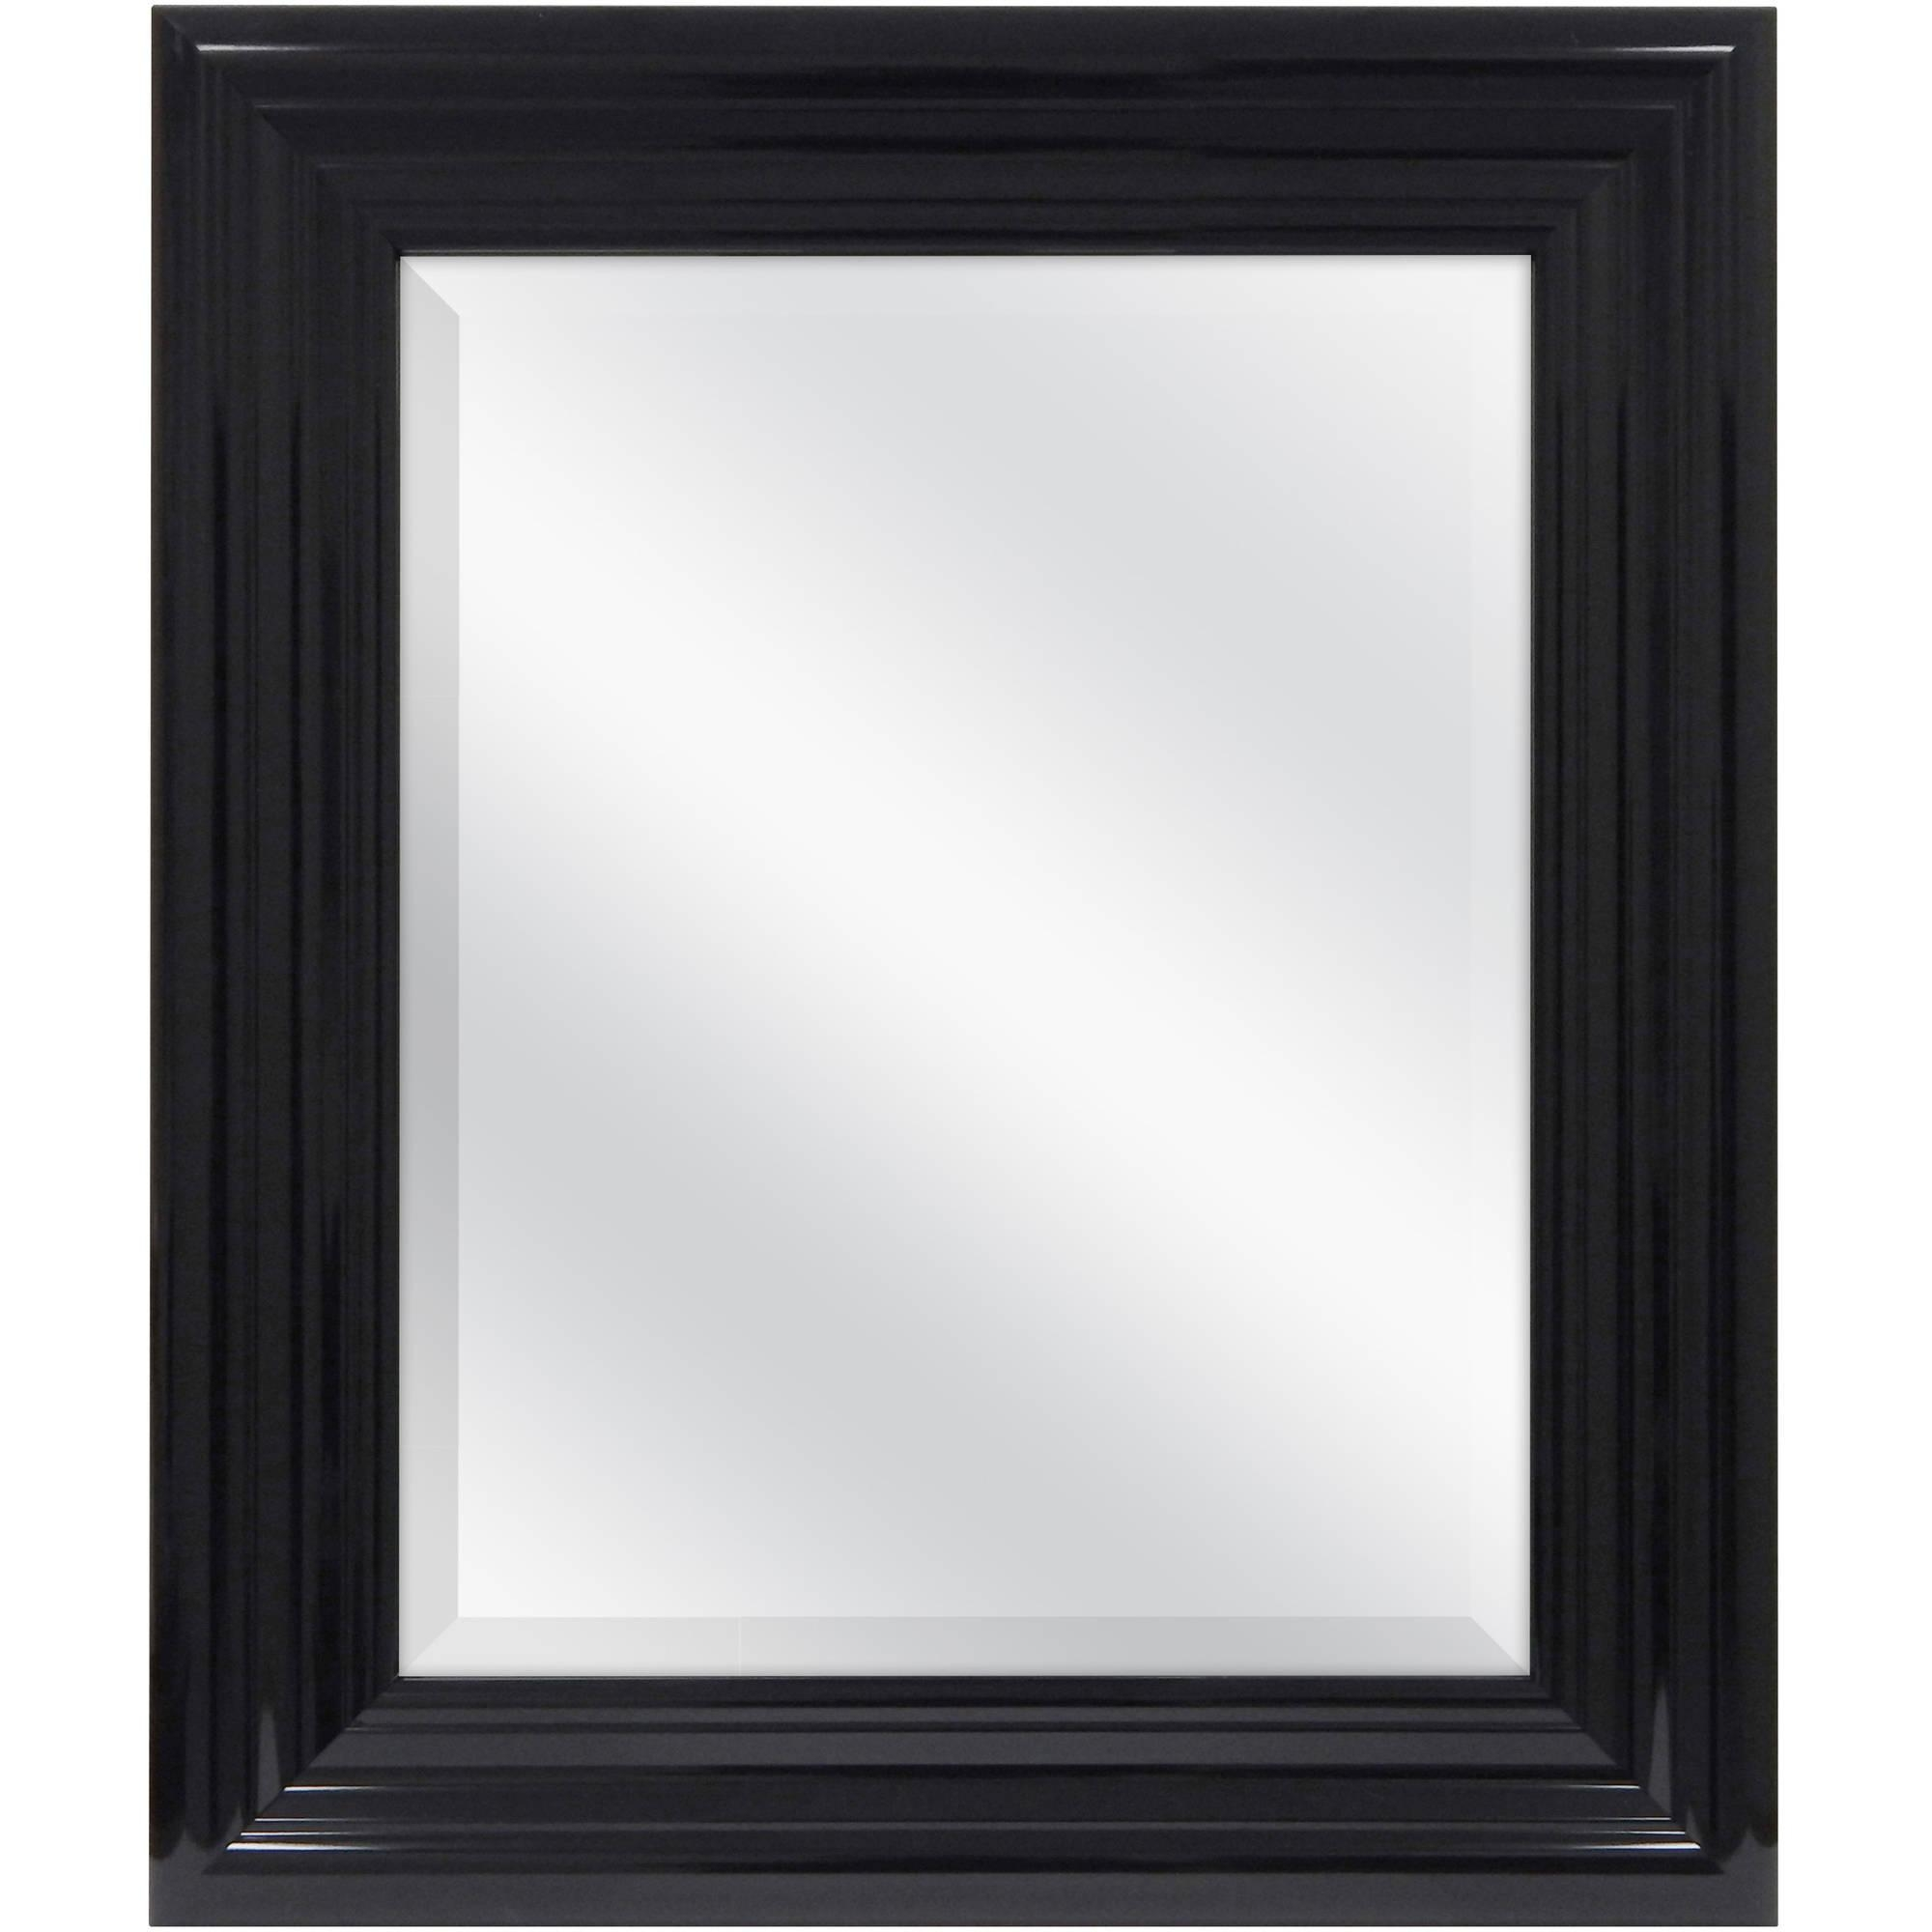 Better Homes And Gardens Baroque Oval Wall Mirror – Walmart Intended For Baroque Black Mirror (Image 6 of 20)